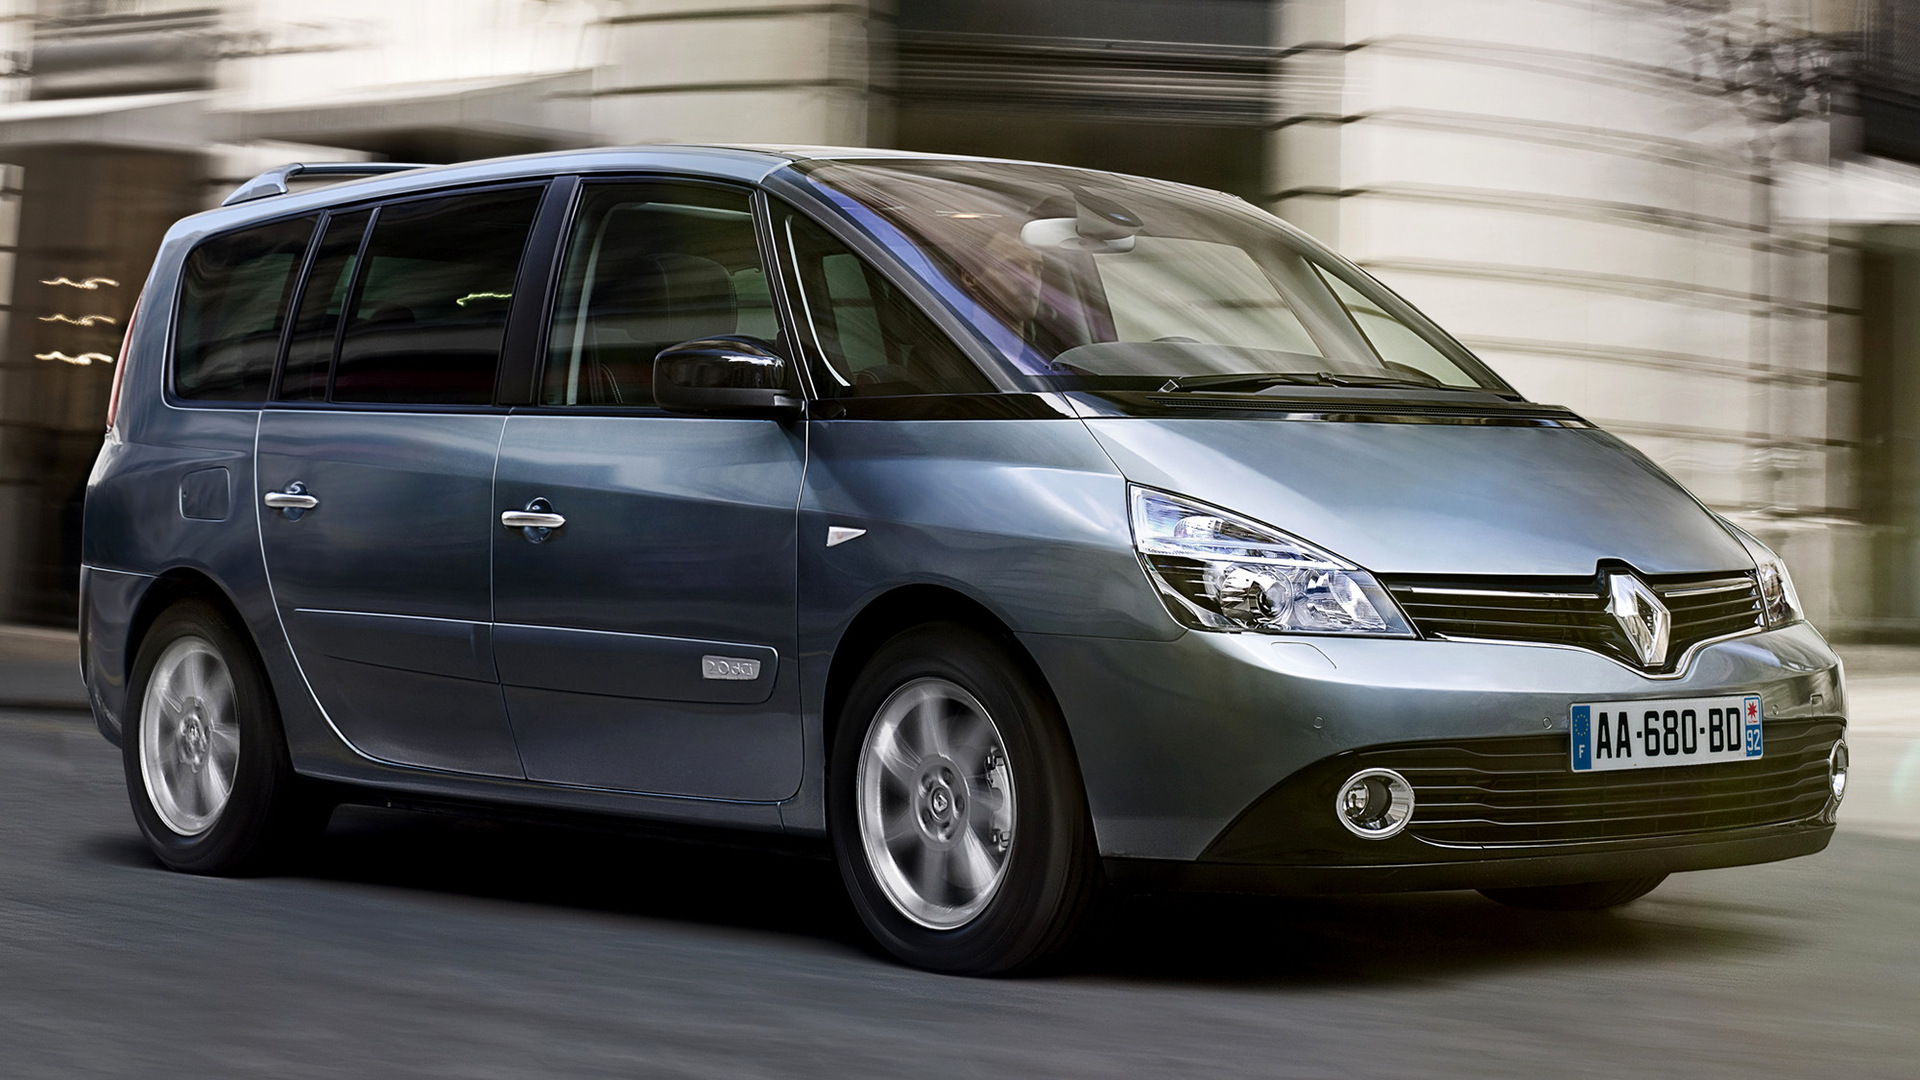 2012 Renault Grand Espace Wallpapers And Hd Images Car Pixel